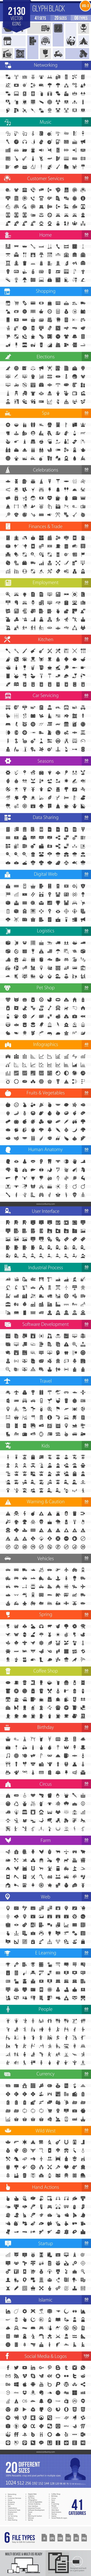 2130 Glyph Icons. Travel Infographics. $58.00